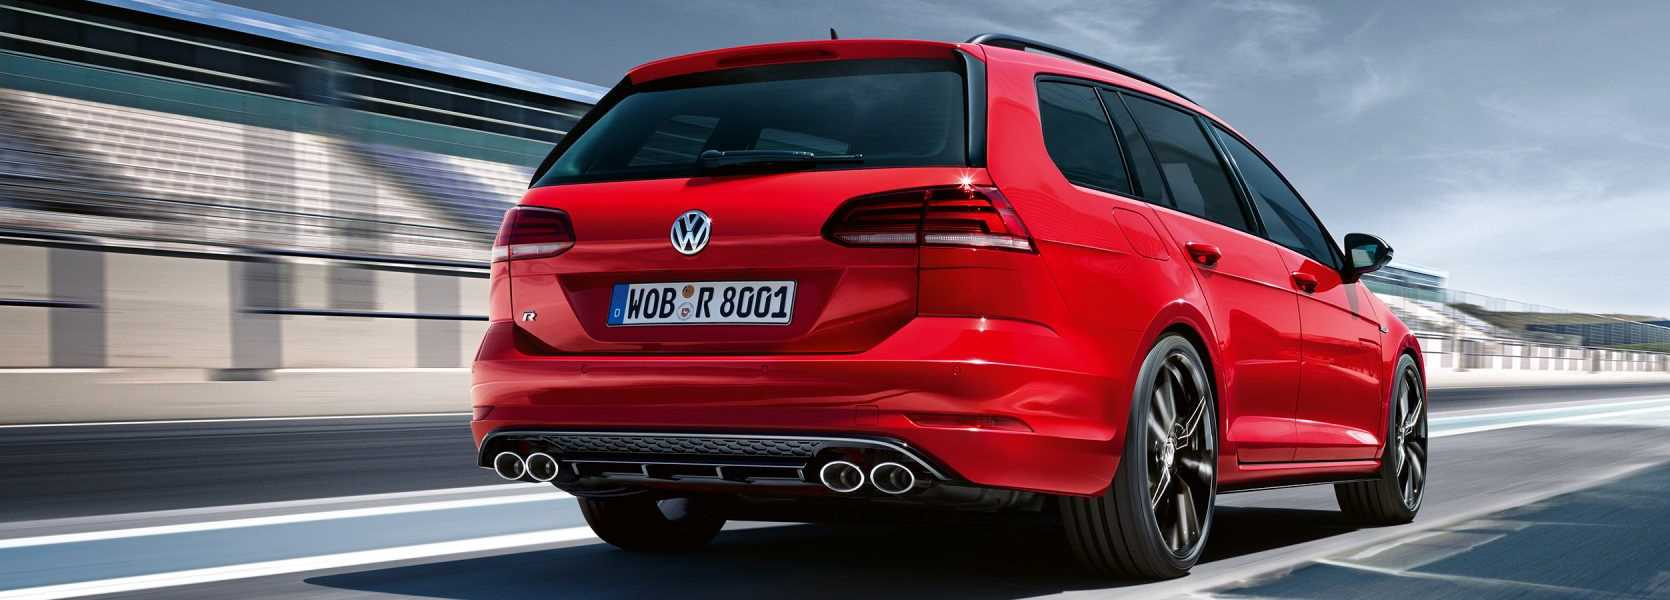 VW Golf Estate in red rear view